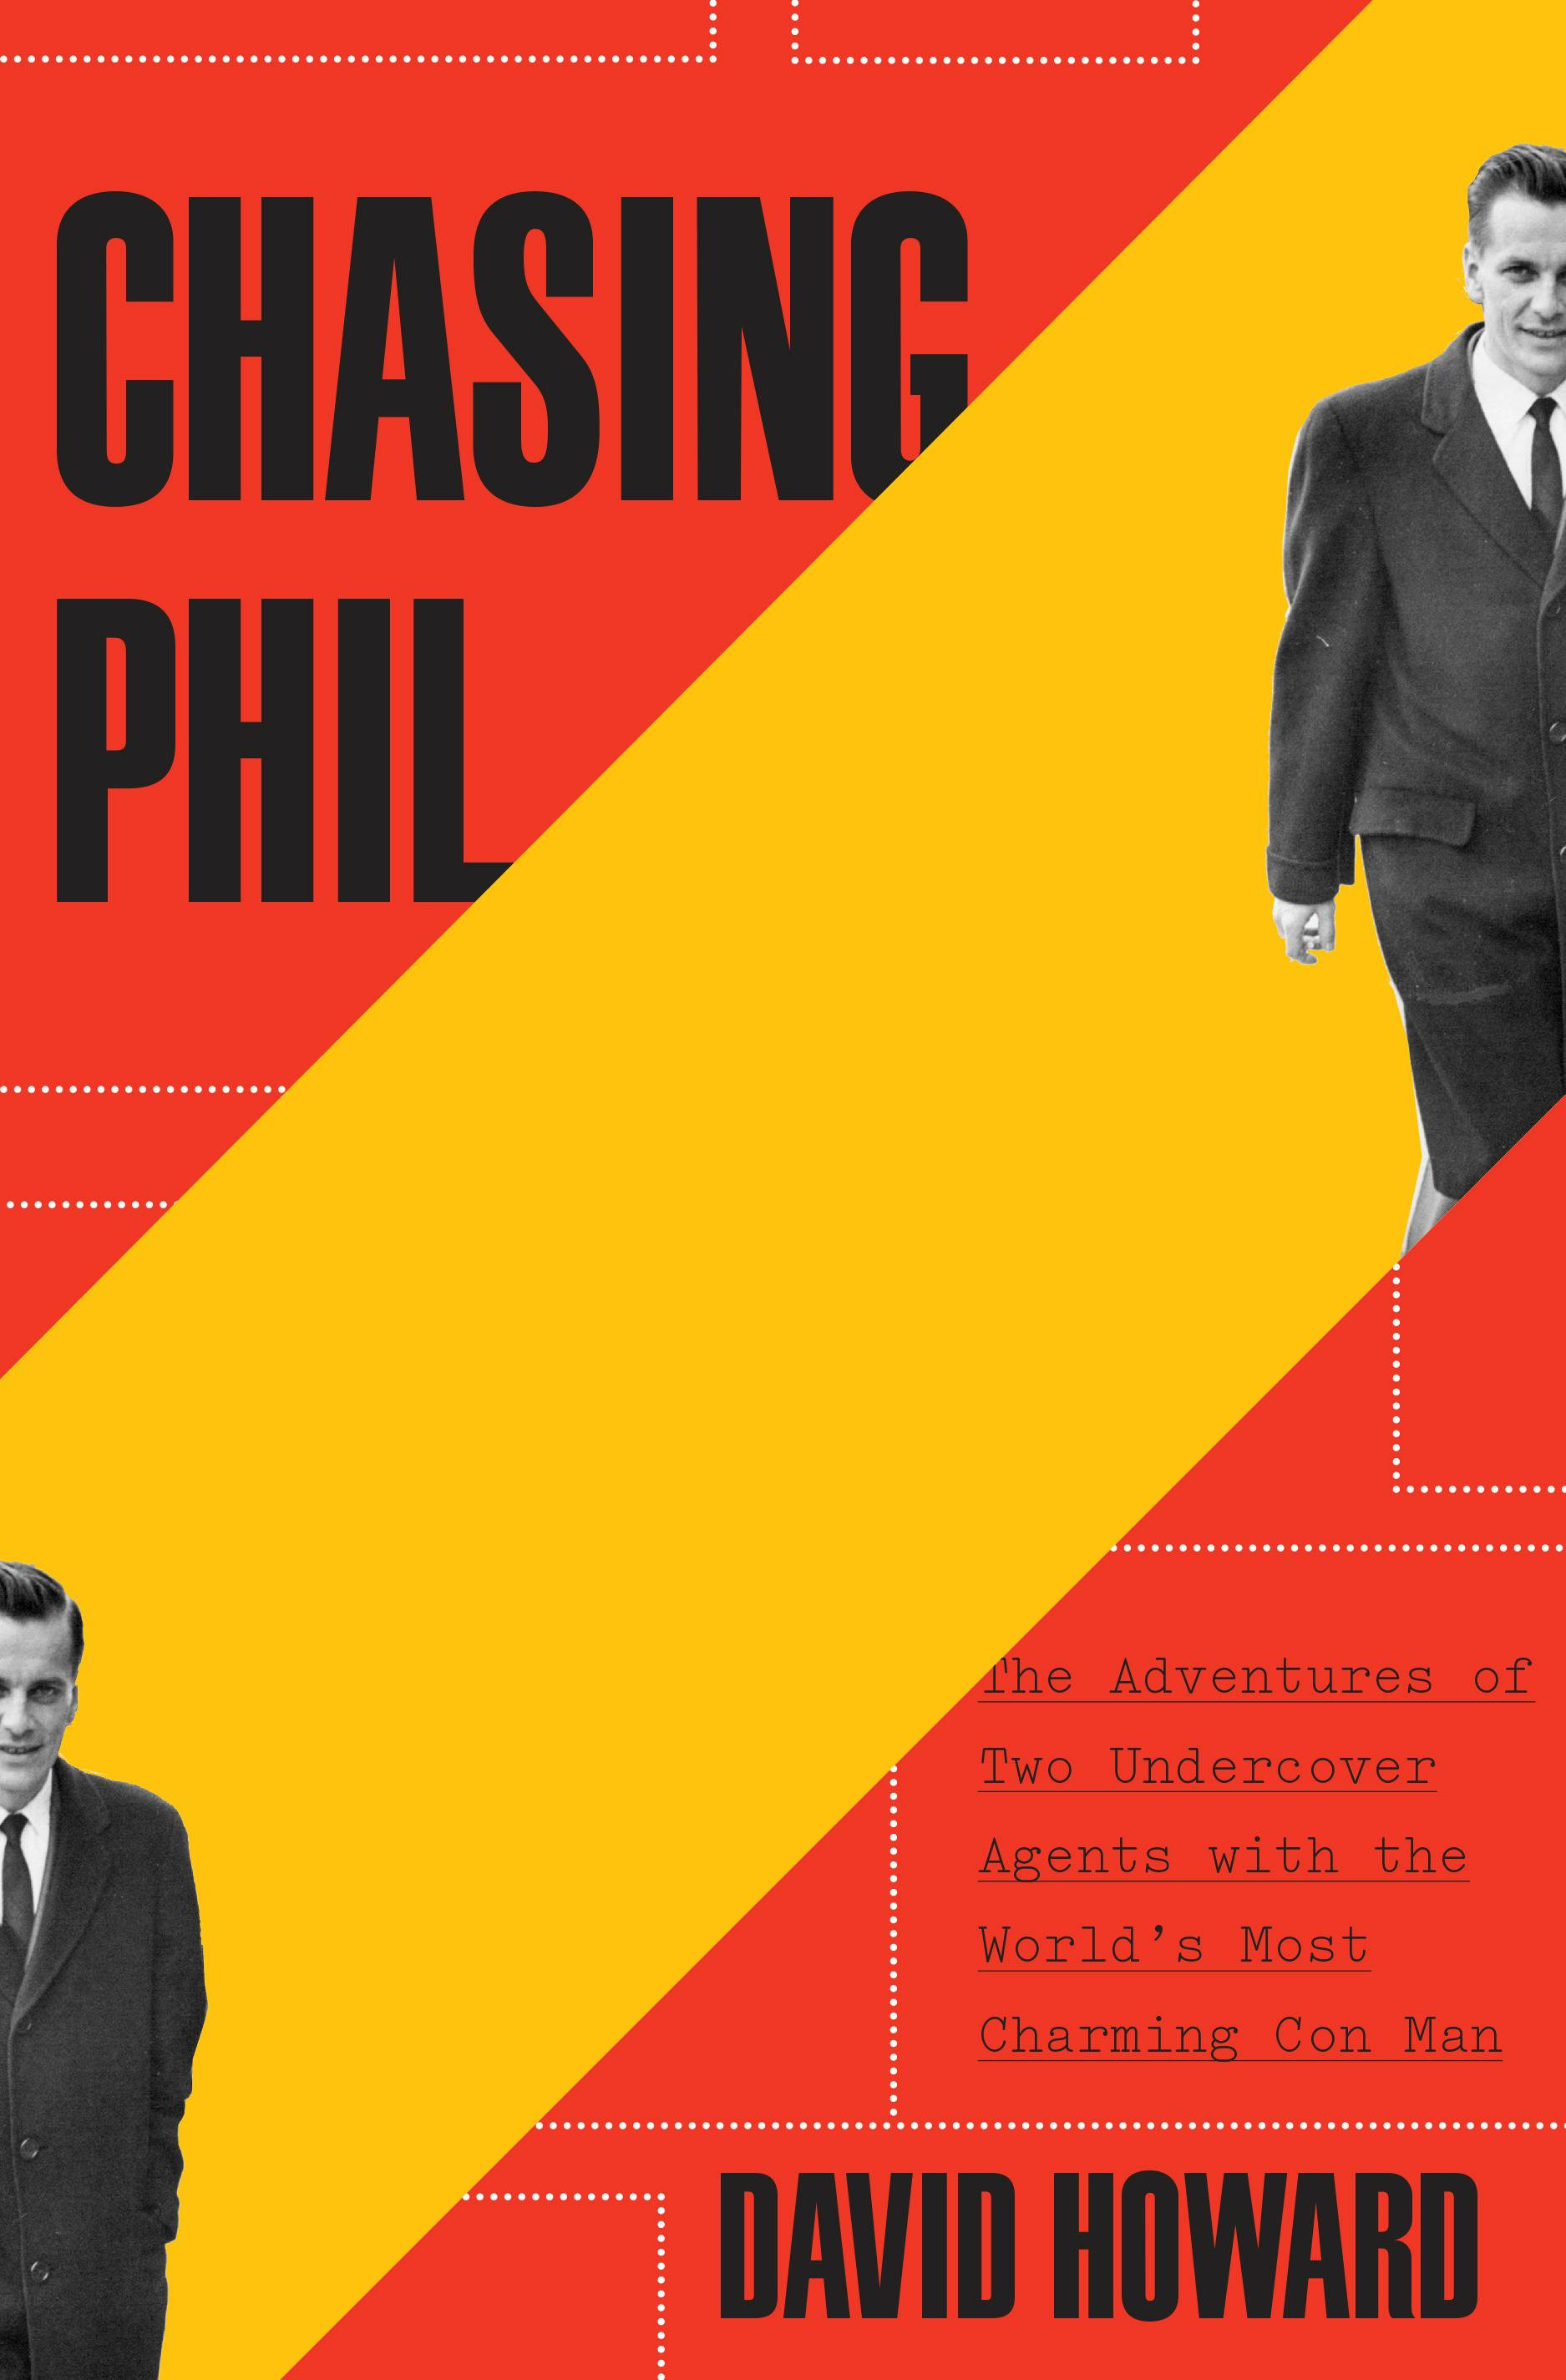 """Chasing Phil: The Adventures of Two Undercover Agents with the World's Most Charming Con Man"""